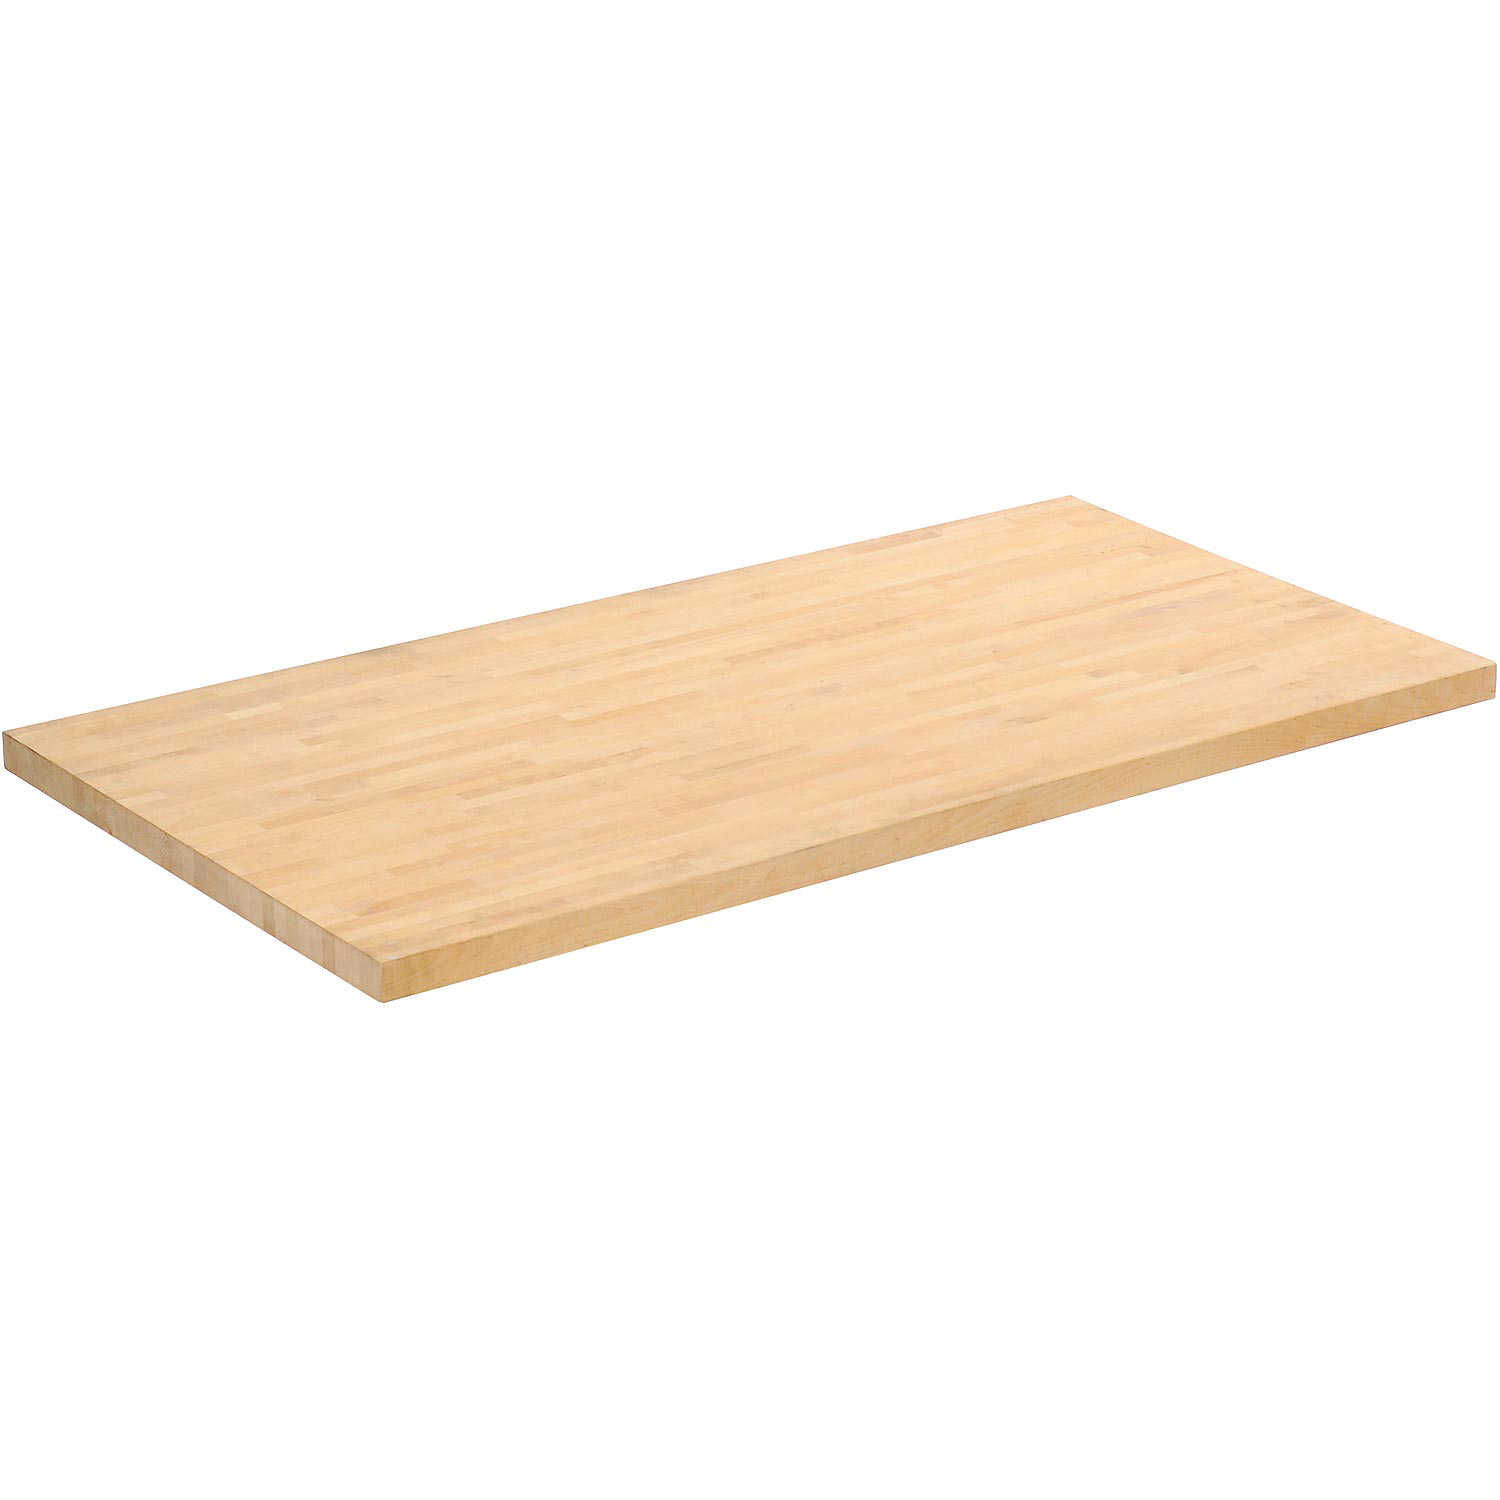 Workbench Top - Birch Butcher Block Square Edge, 60'W x 36'D x 1-3/4' Thick, Lot of 1